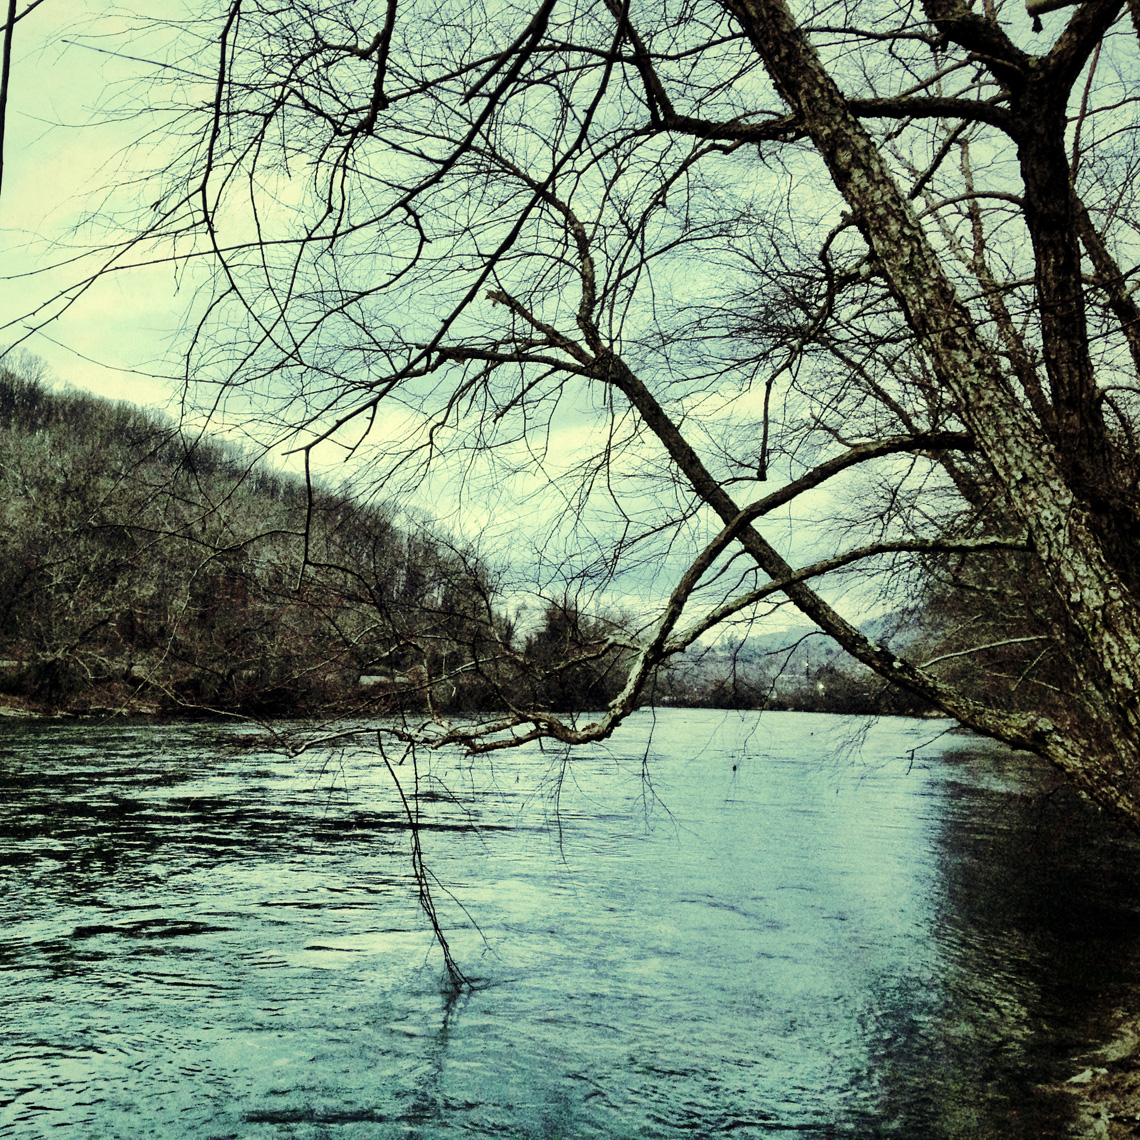 Los Angeles Dog Photography, Michael Brian, Asheville, North Carolina, River at Bywater, iphone photography, iPhoneography